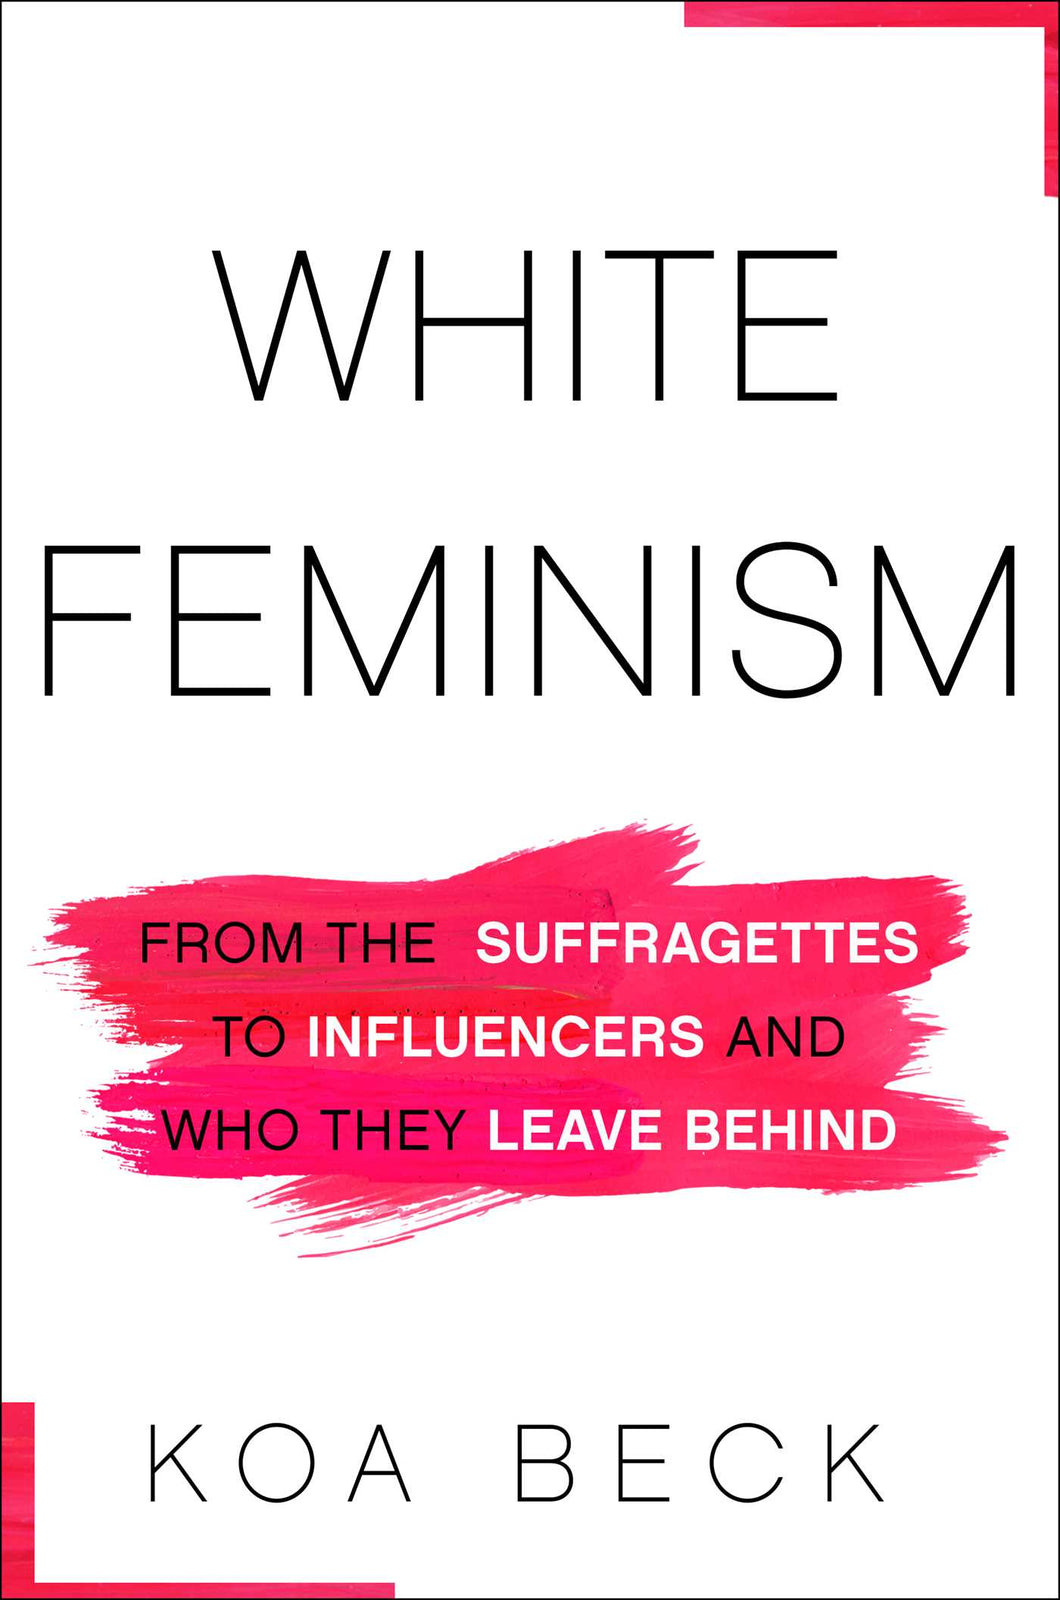 White Feminism: From the Suffragettes to Influencers and Who They Leave Behind by Koa Beck